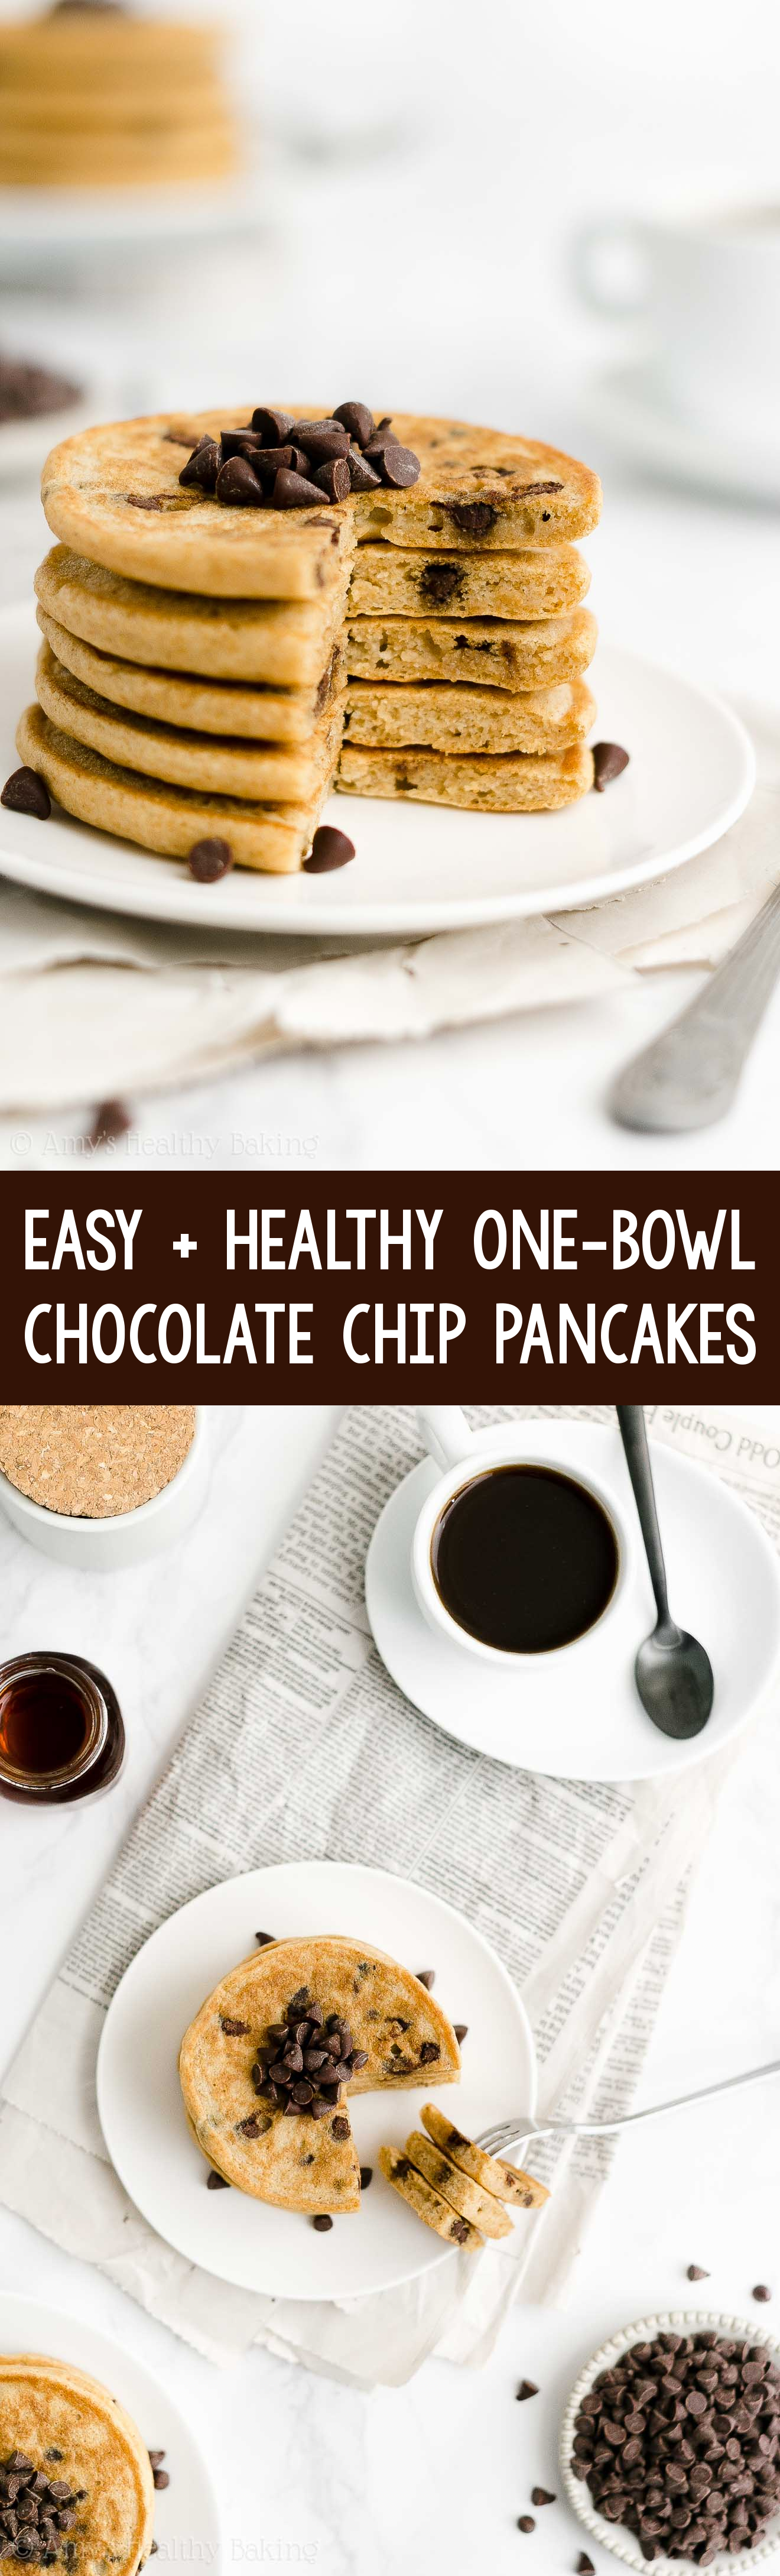 ULTIMATE Best Ever Easy Healthy Homemade Fluffy Chocolate Chip Pancakes From Scratch